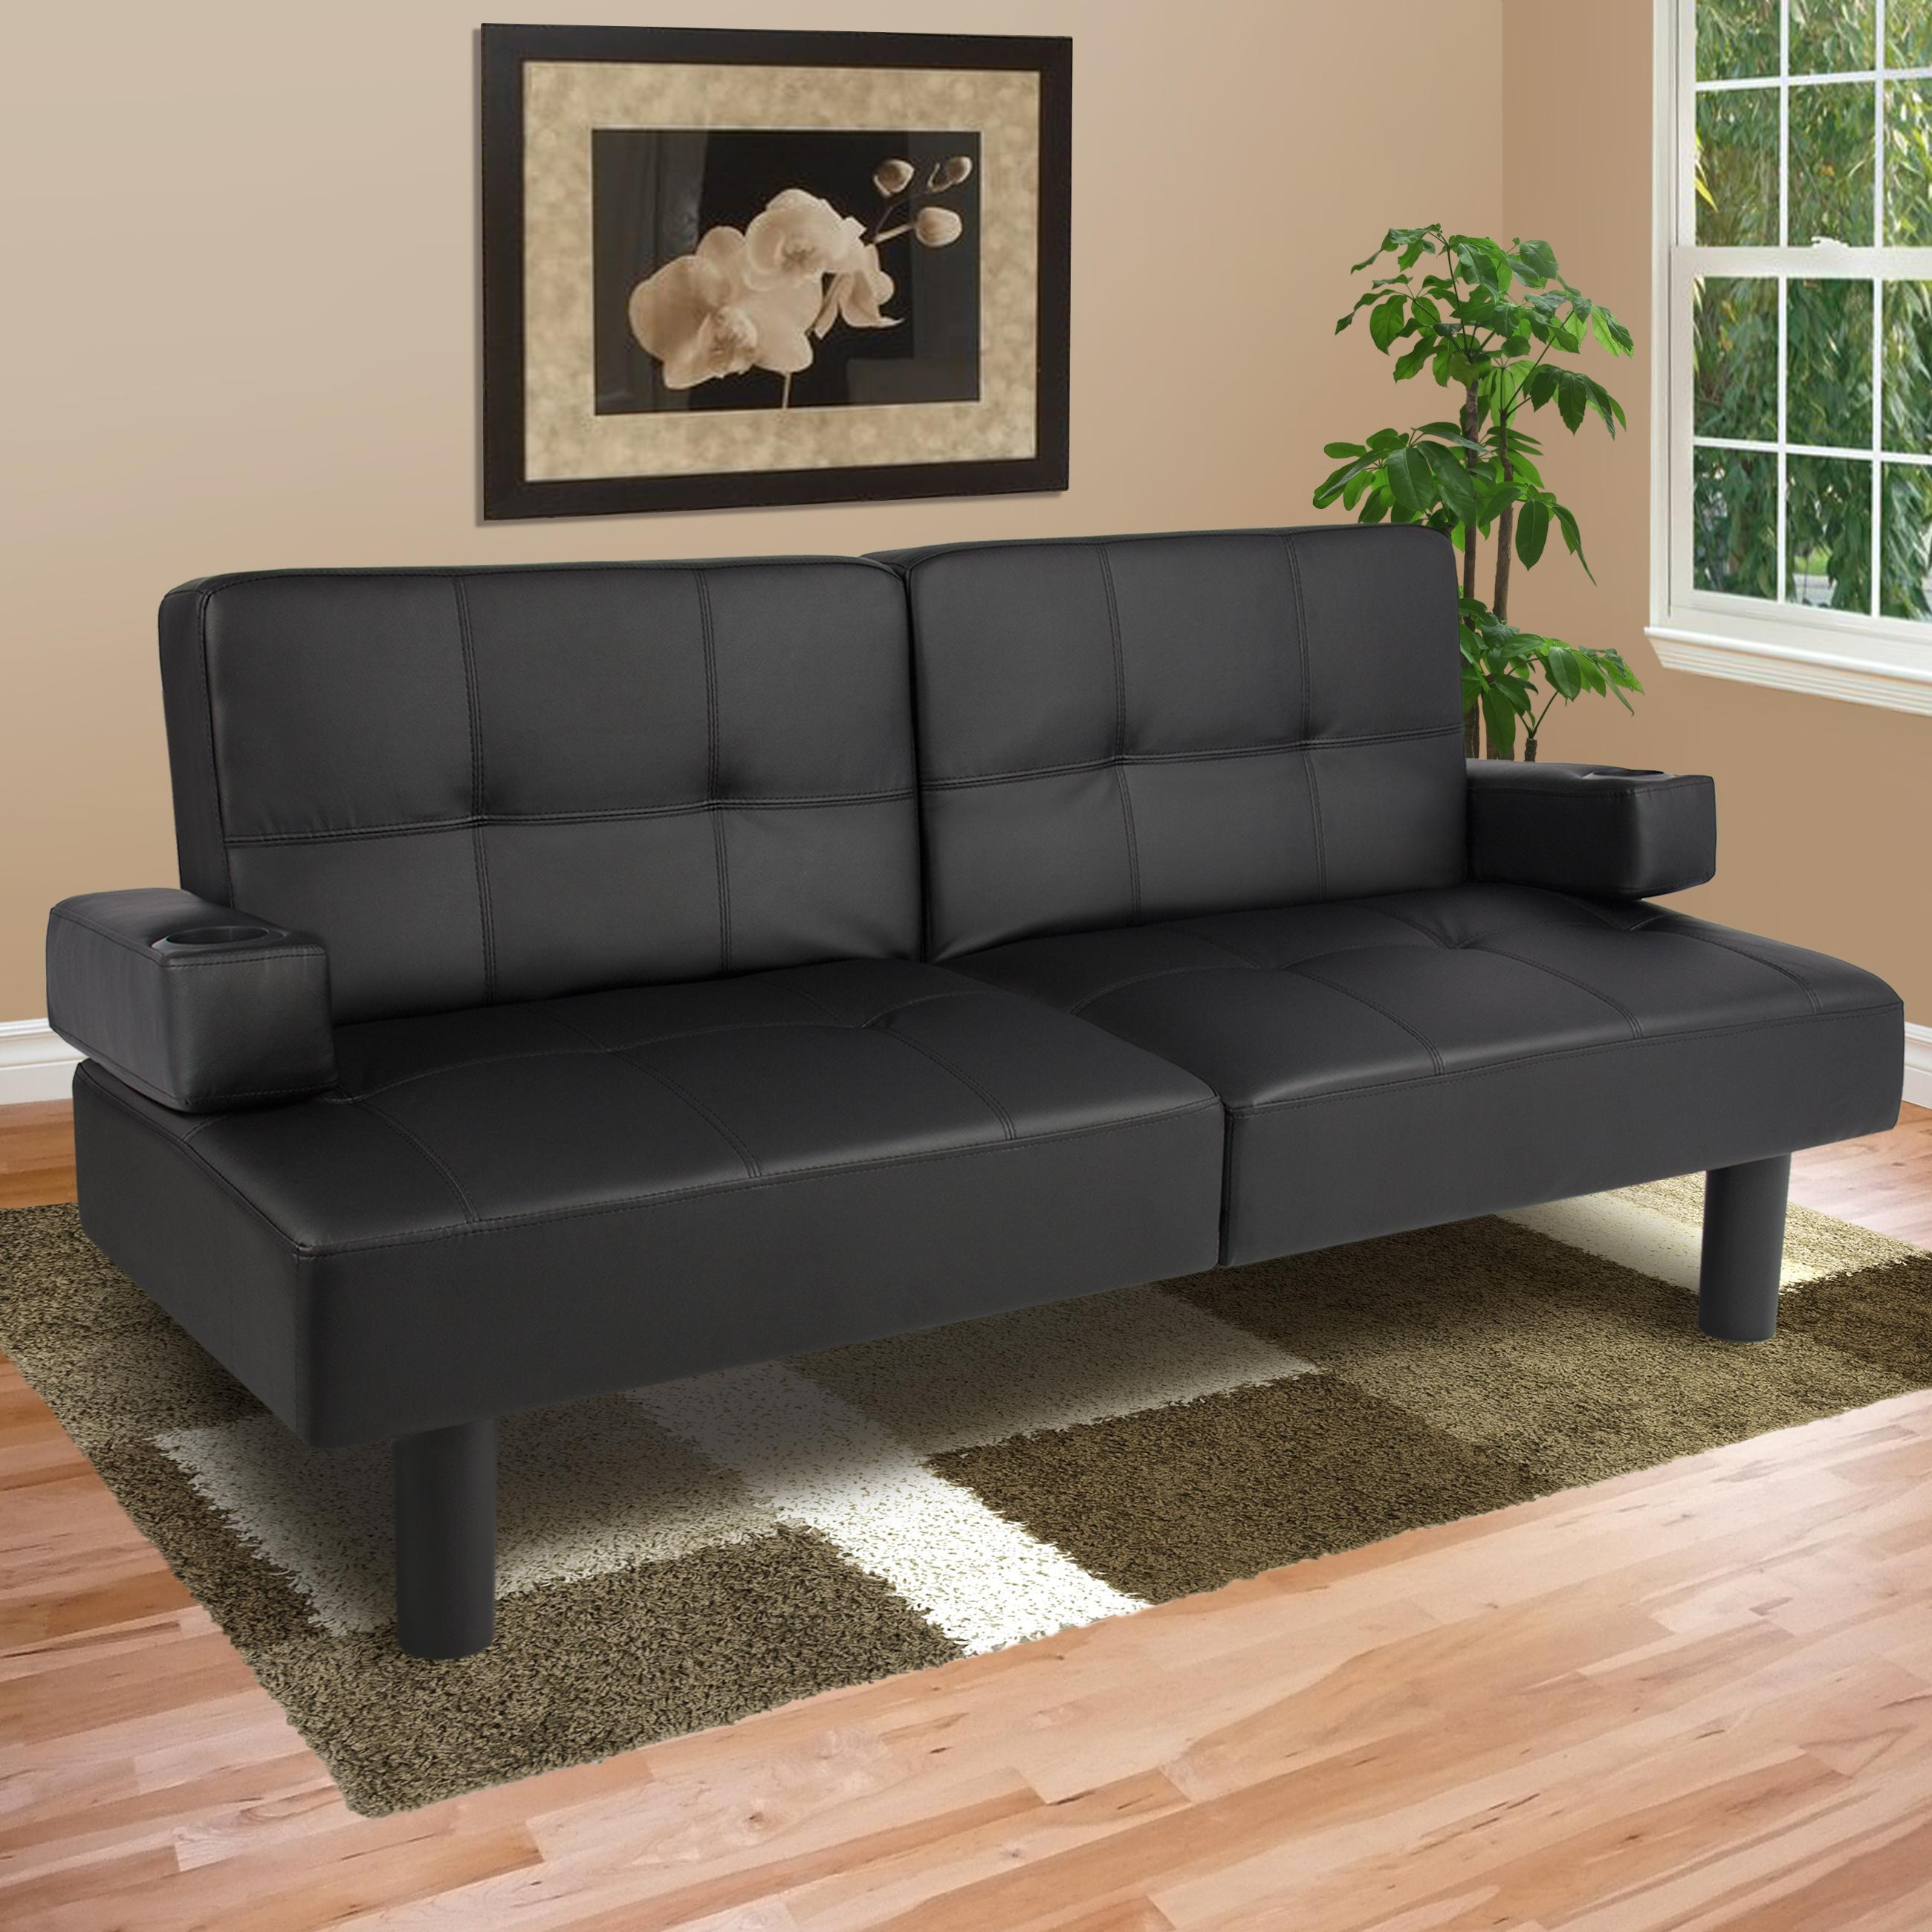 Best Choice Products Modern Leather Futon Sofa Bed Fold Up & Down Intended For Convertible Futon Sofa Beds (View 5 of 20)